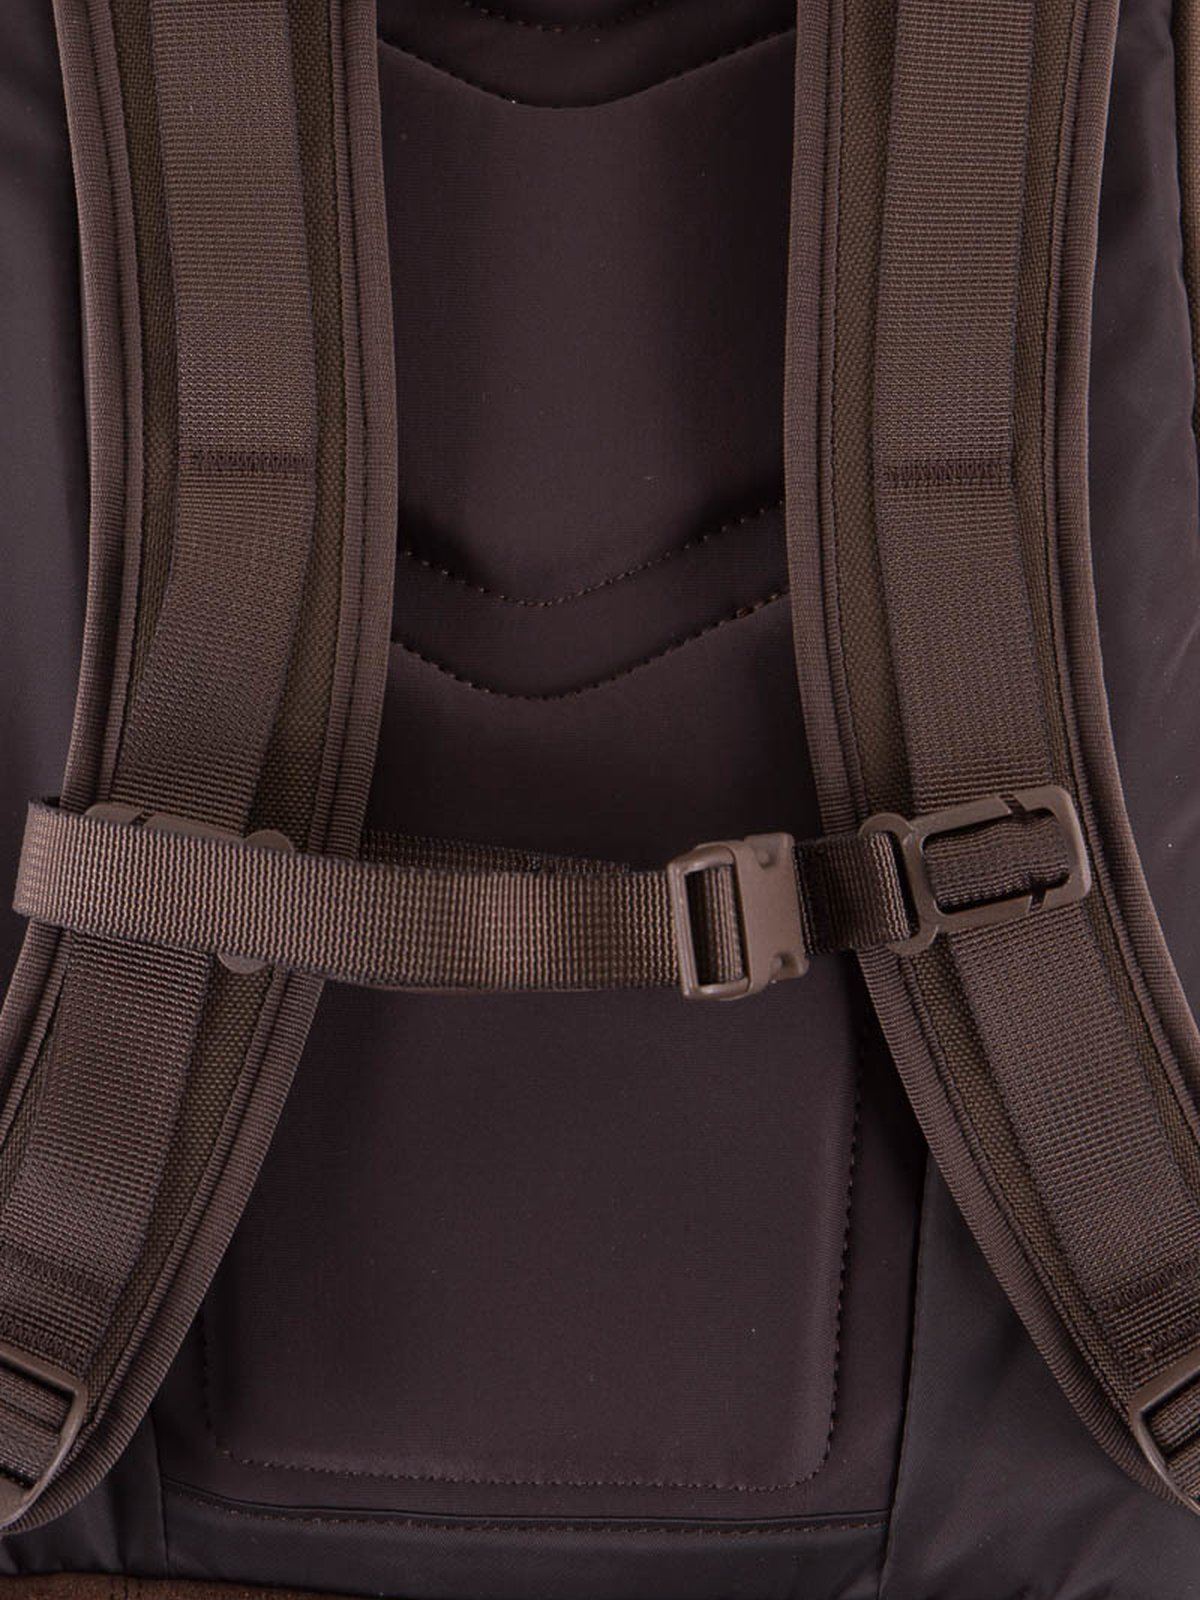 Brown 20L Cordura Backpack - Image 5